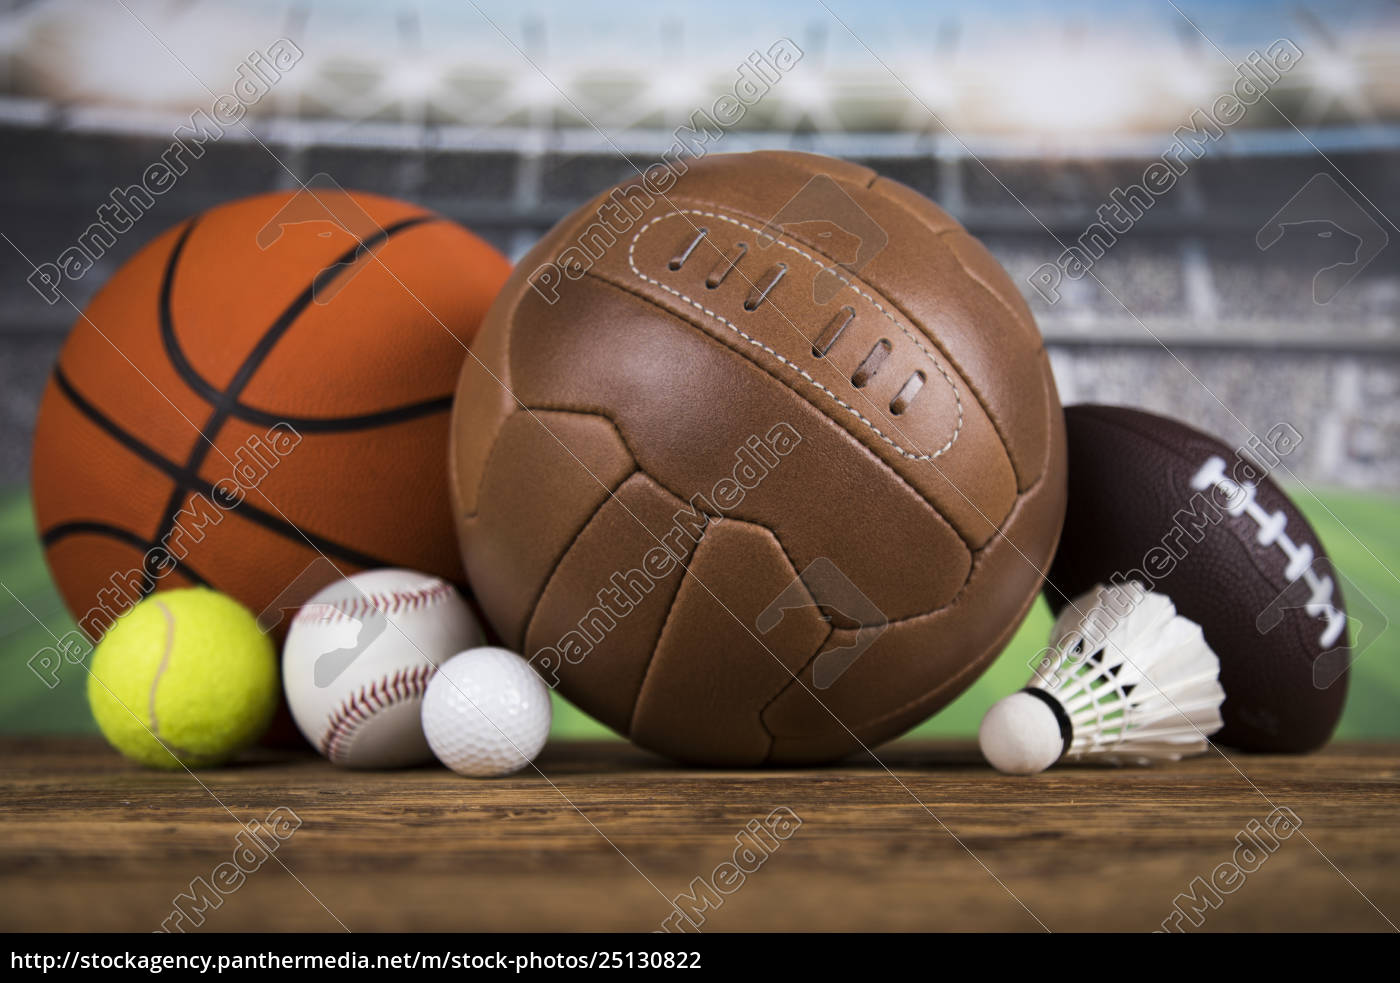 sports, balls, with, equipment - 25130822